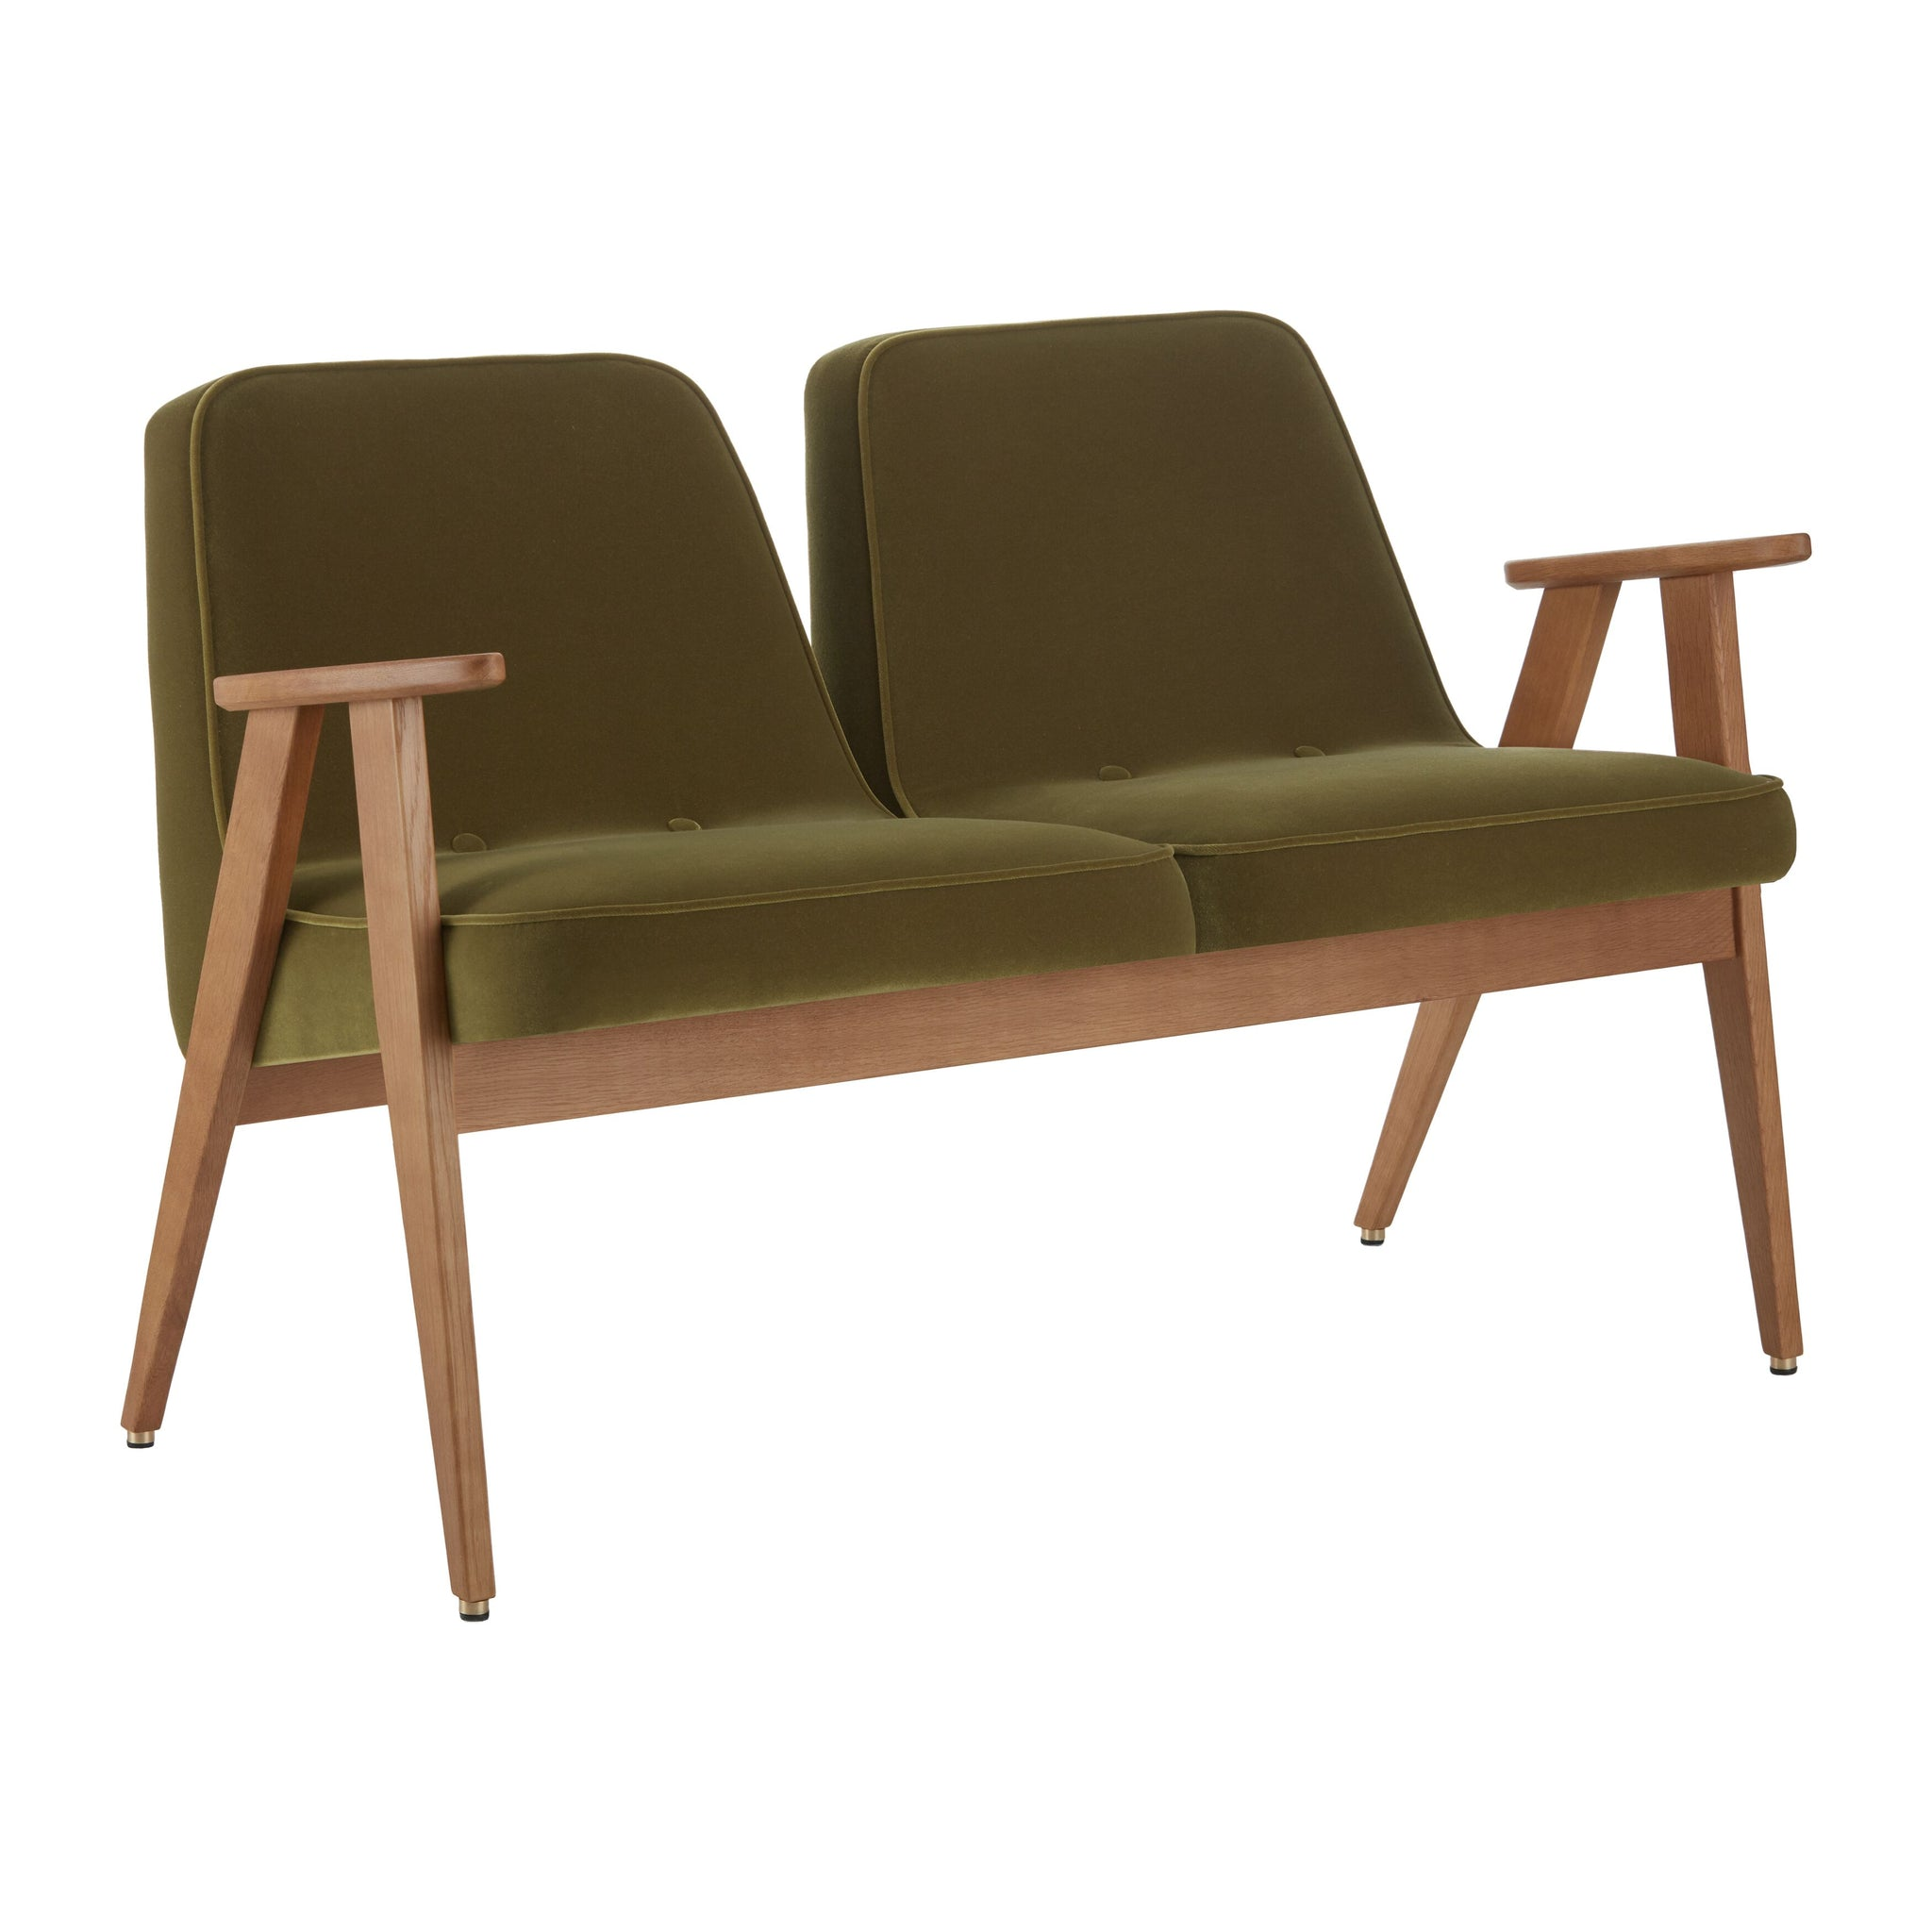 366 Series 2 Seater - Mid Century Design